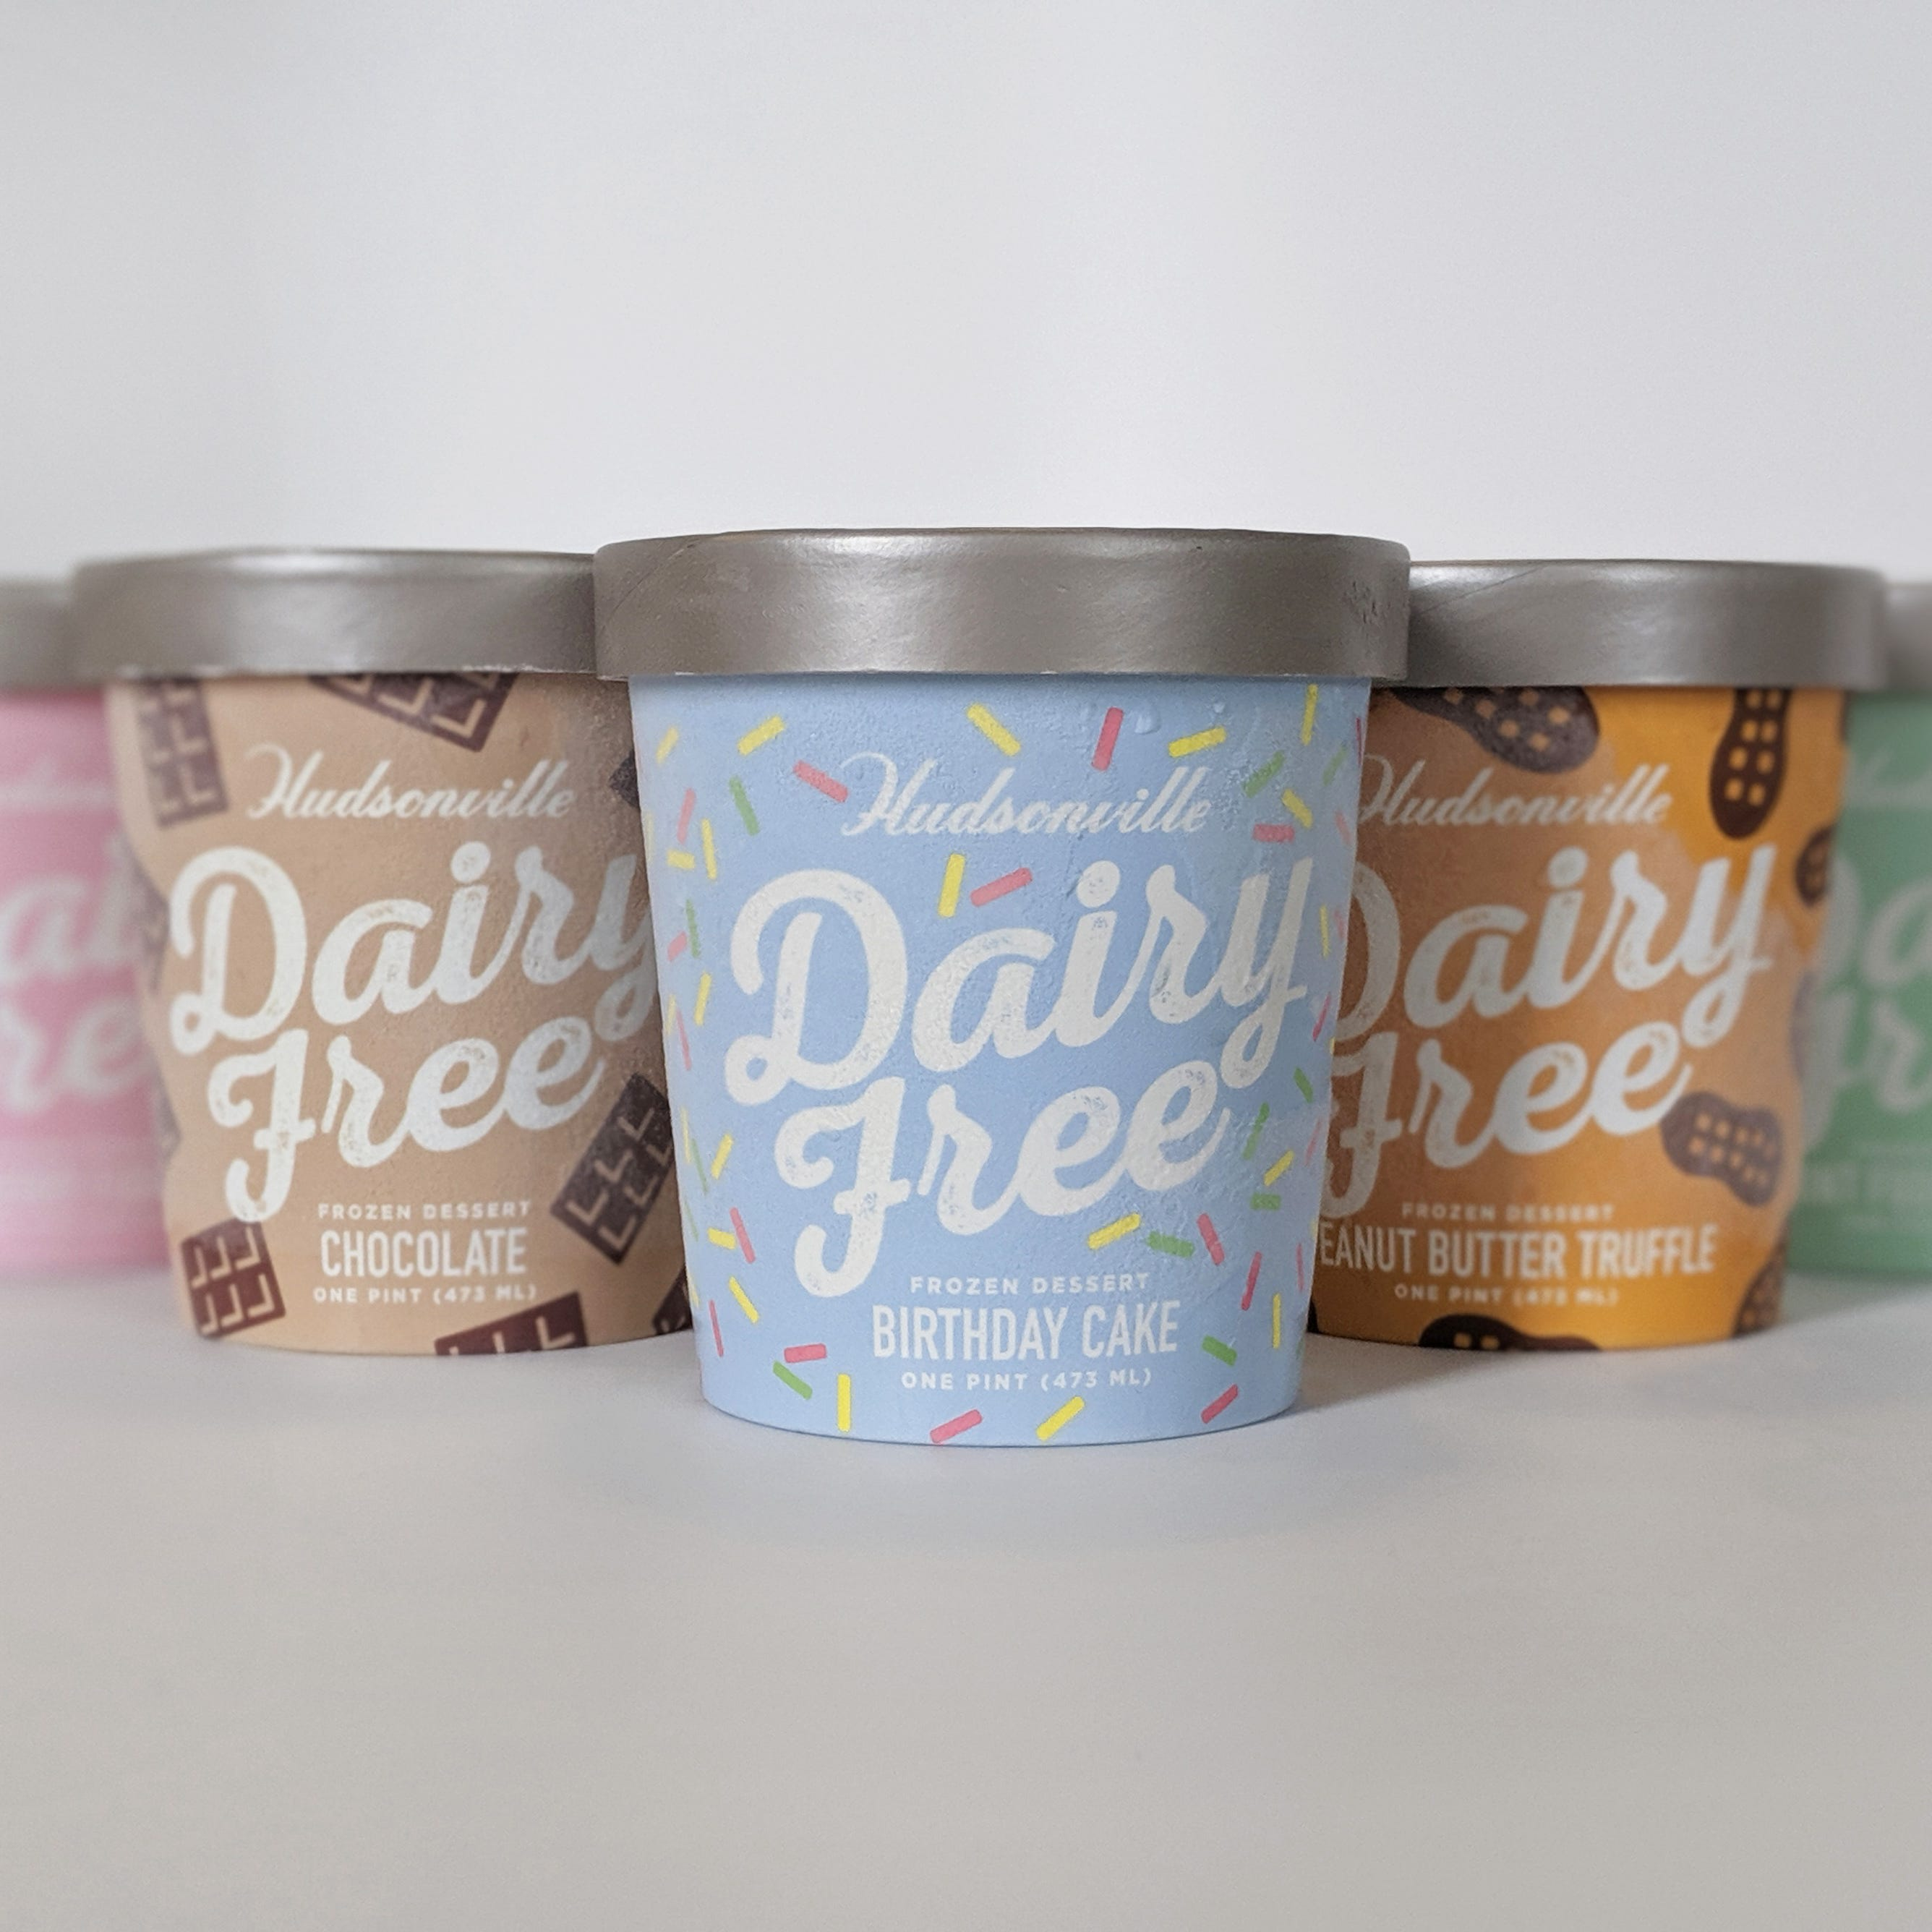 Hudsonville's vegan-friendly and dairy-free ice cream coming to Meijer stores